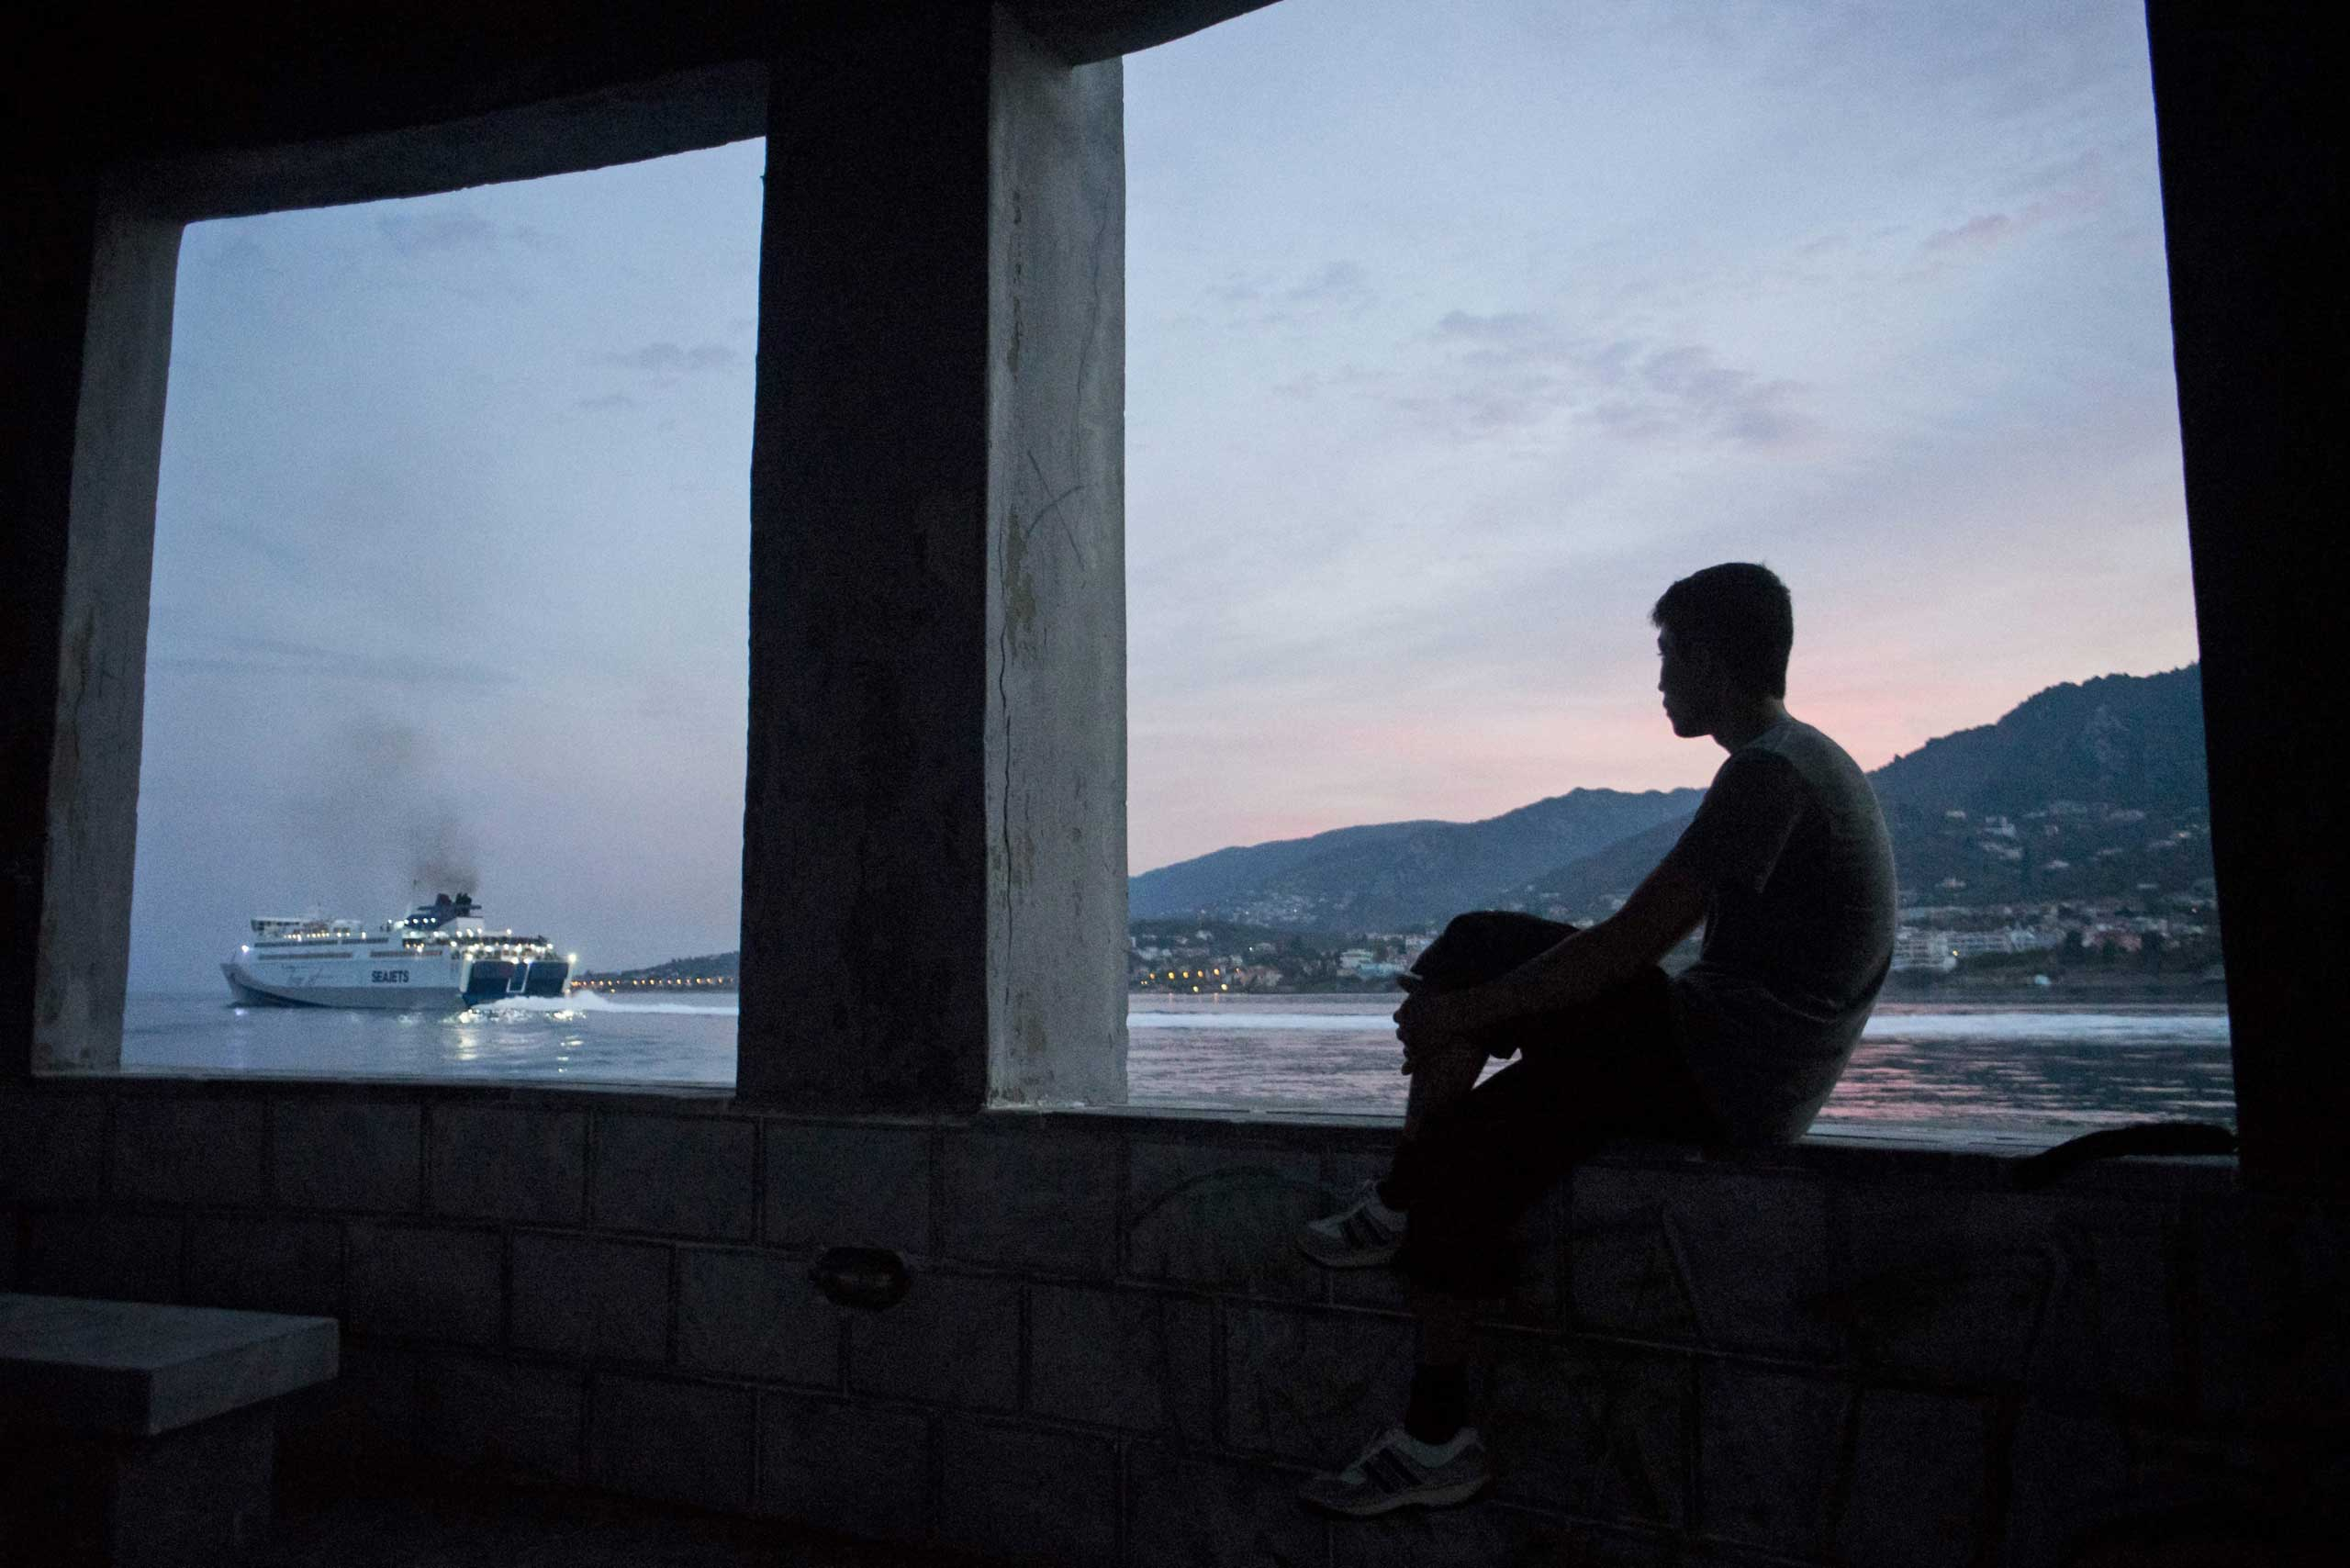 A migrant who recently arrived across the Mediterranean Sea from Turkey, watching a ferry in the port of Mytilene, Lesbos island, Greece, on Oct. 5, 2015.